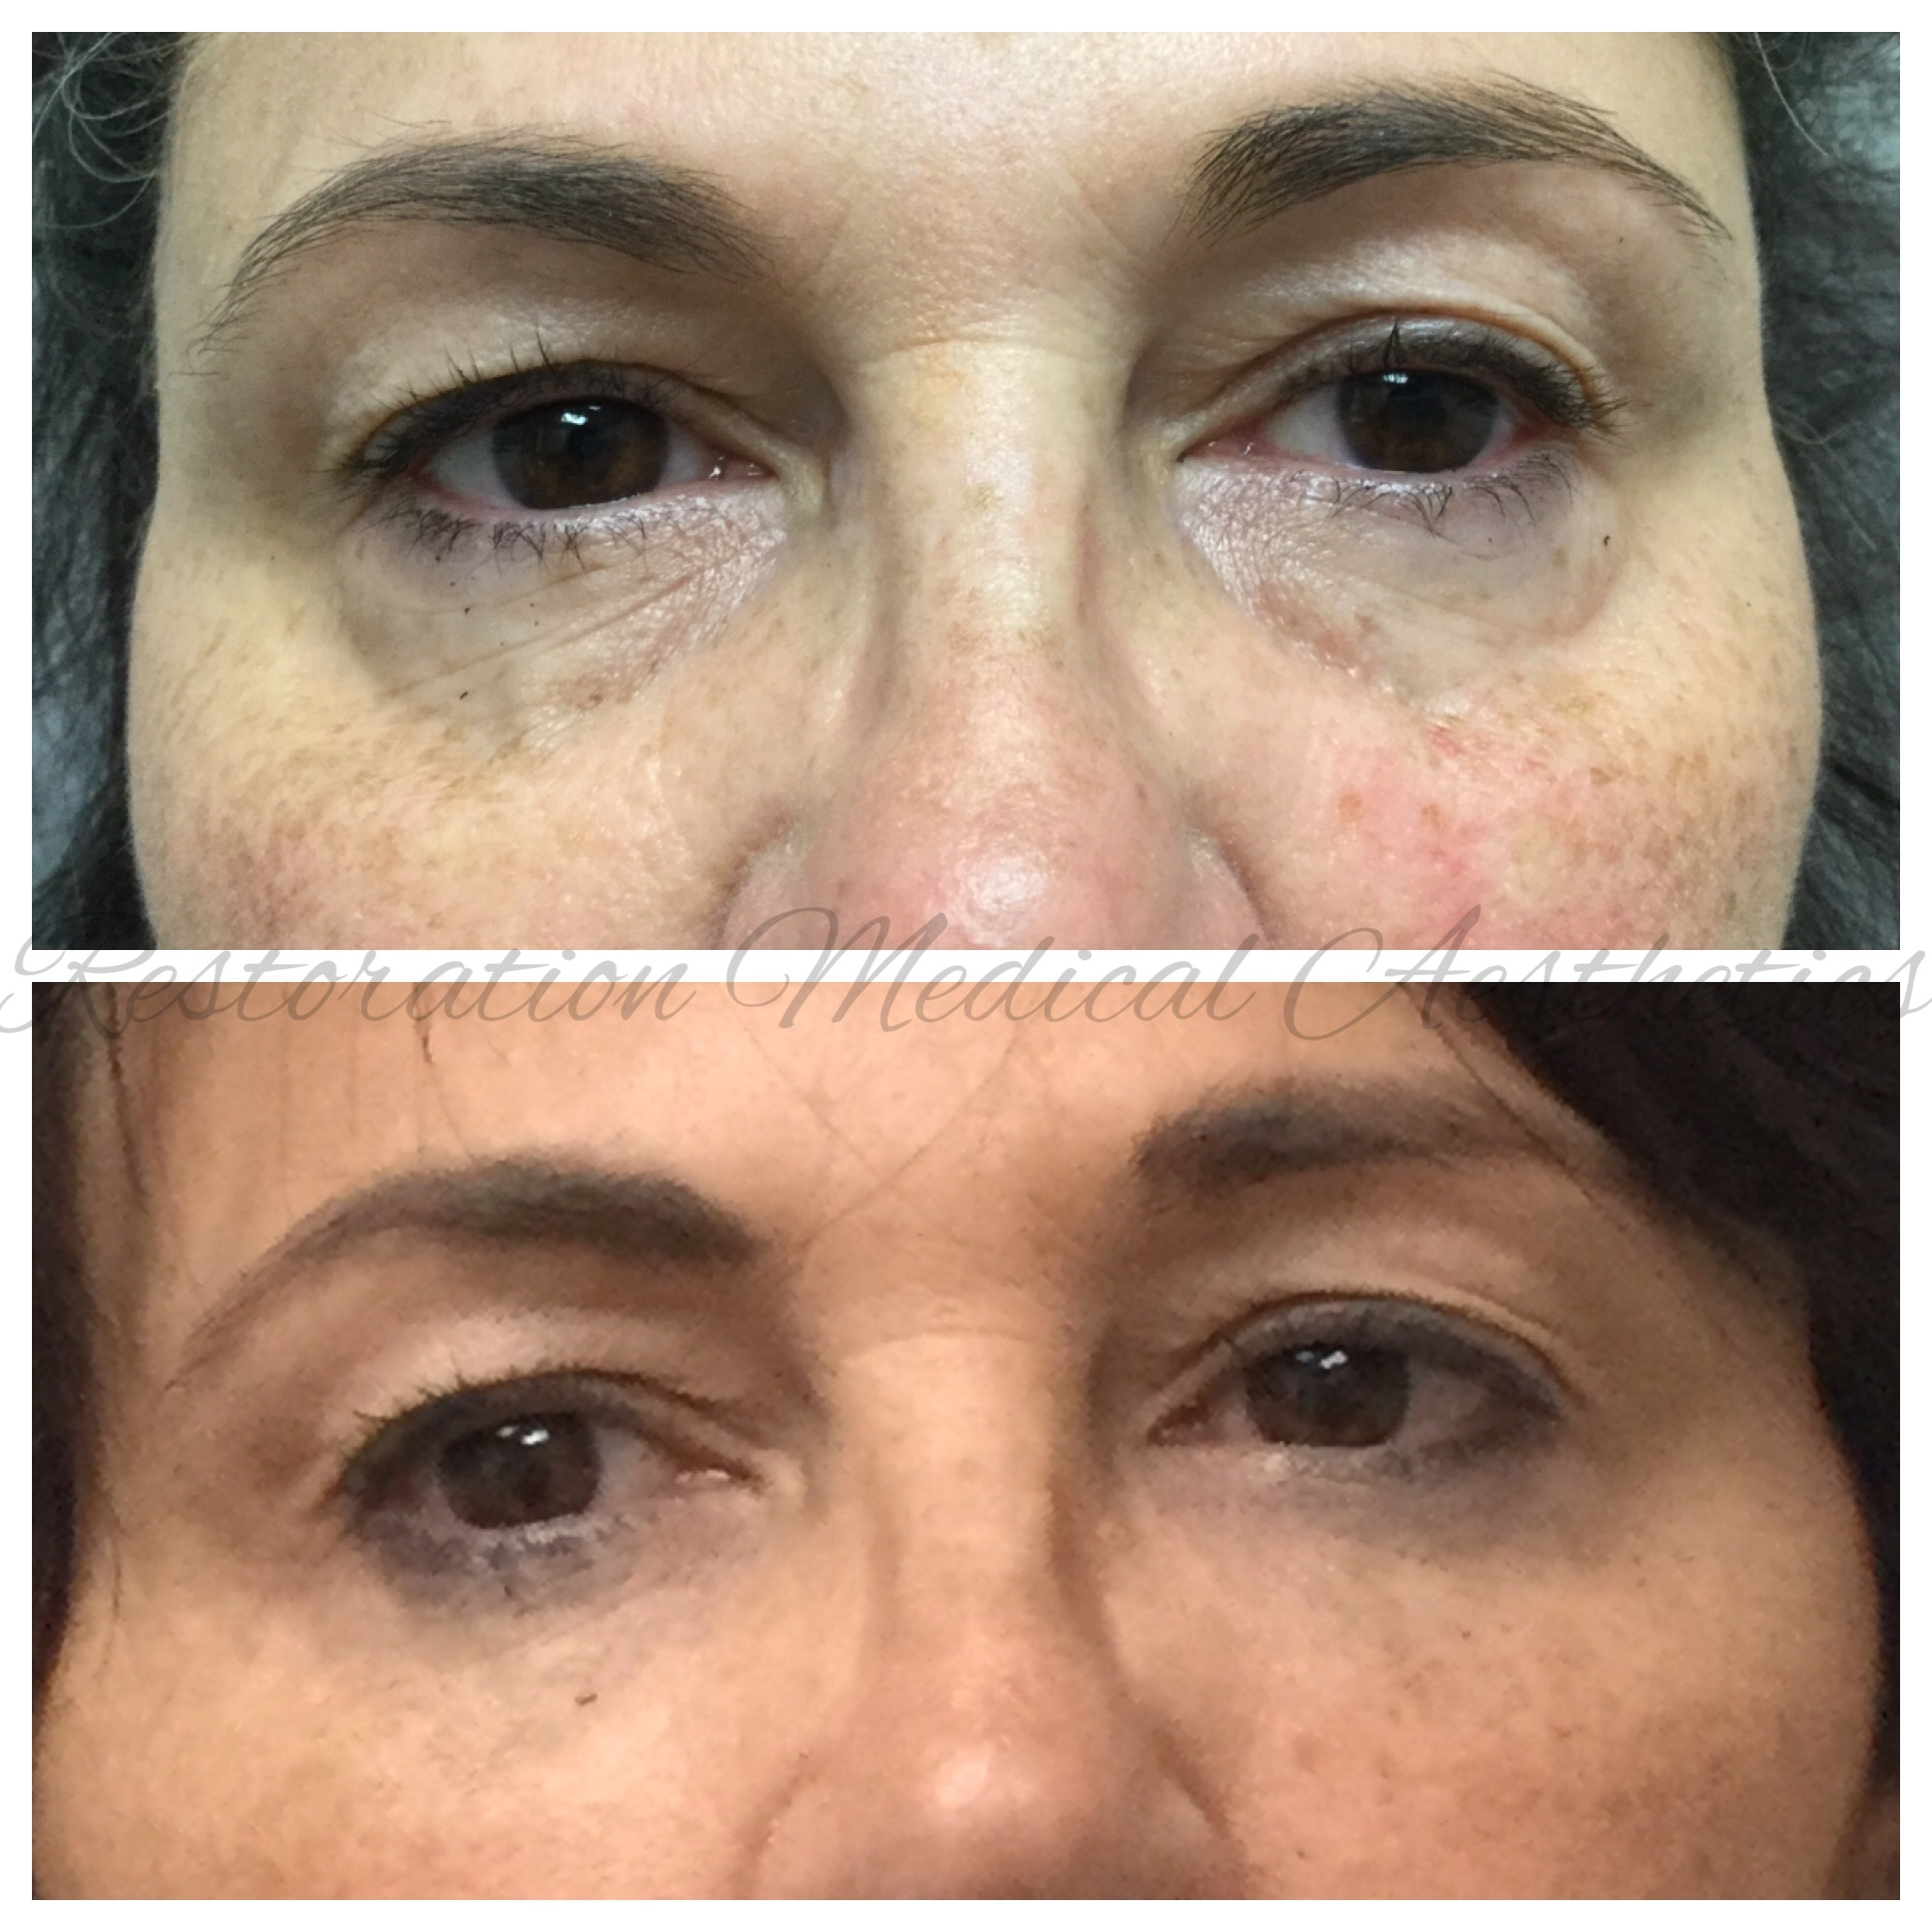 - BEFORE AND 2 WEEKS AFTER FILLER UNDER THE EYES